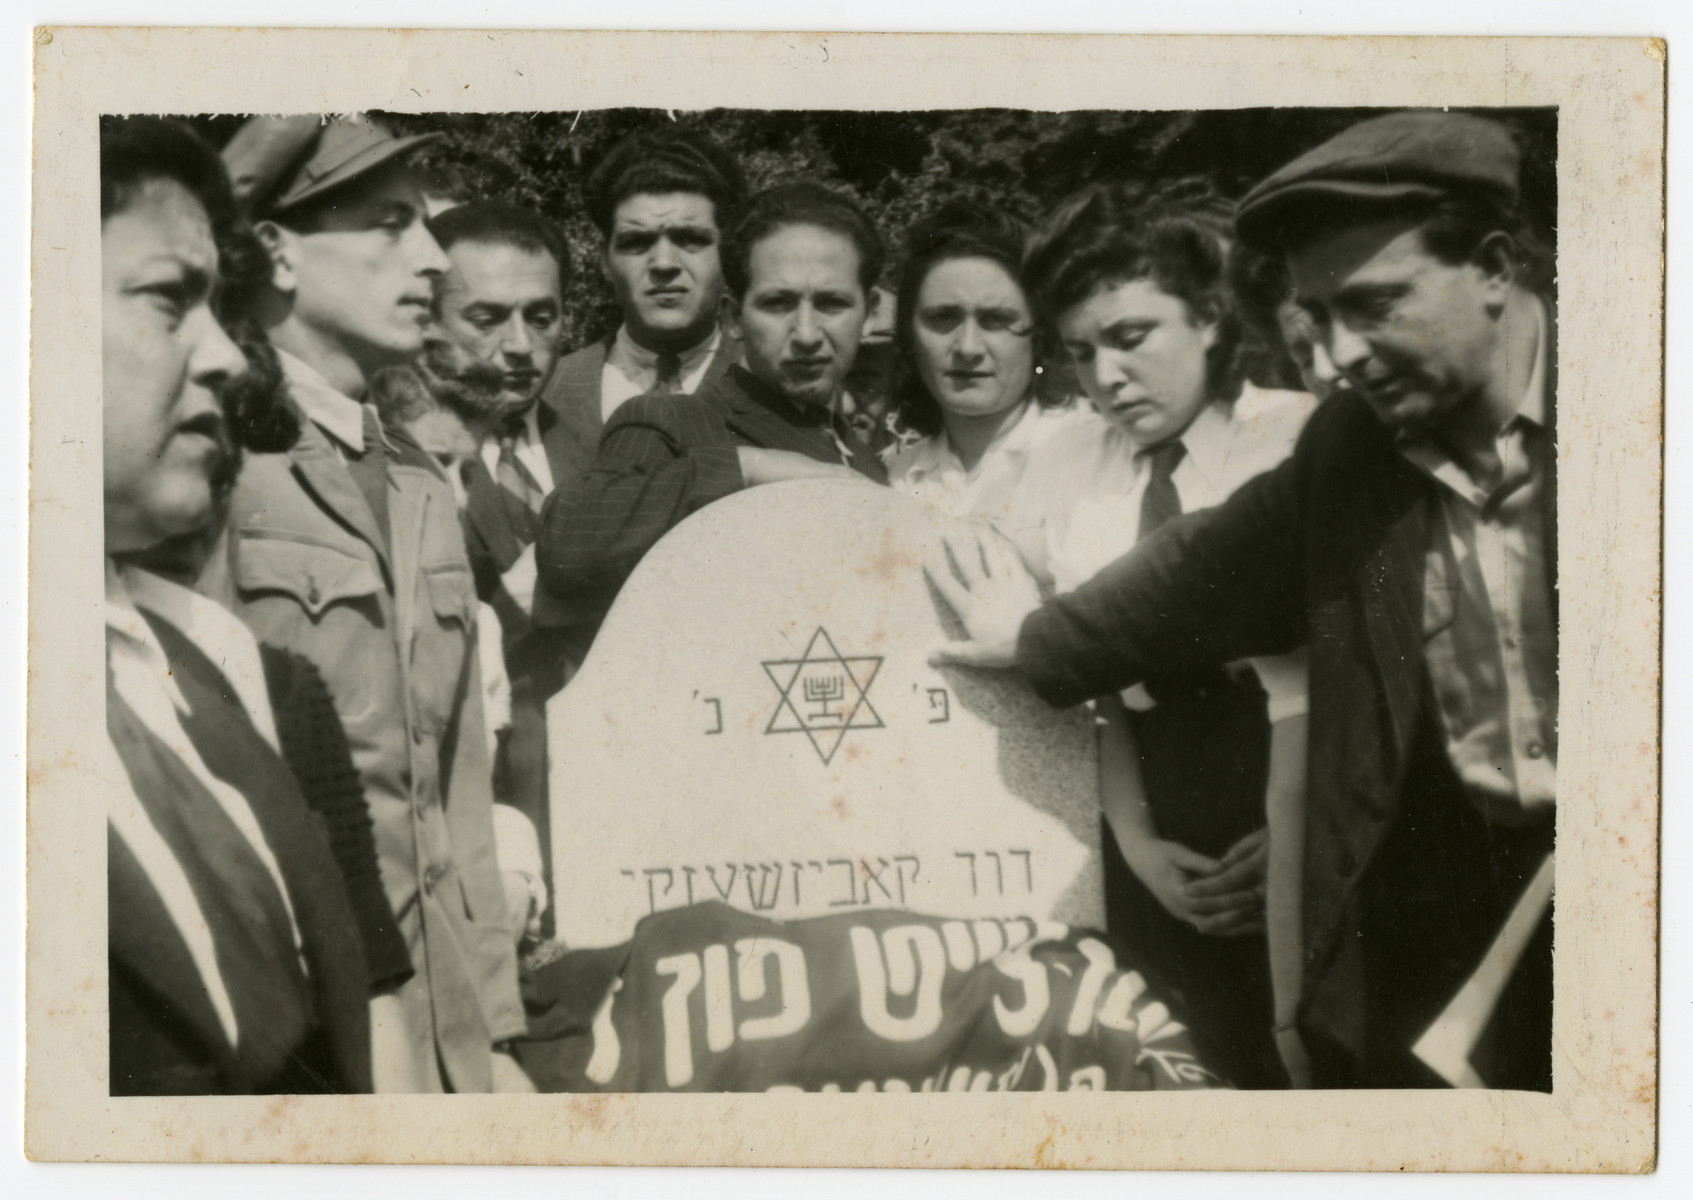 Displaced persons gather around the grave of Jewish policeman, David Kabesicki in Feldafing.  Those pictured include Leib and Jenta Szapiro and Rifka Krasner.